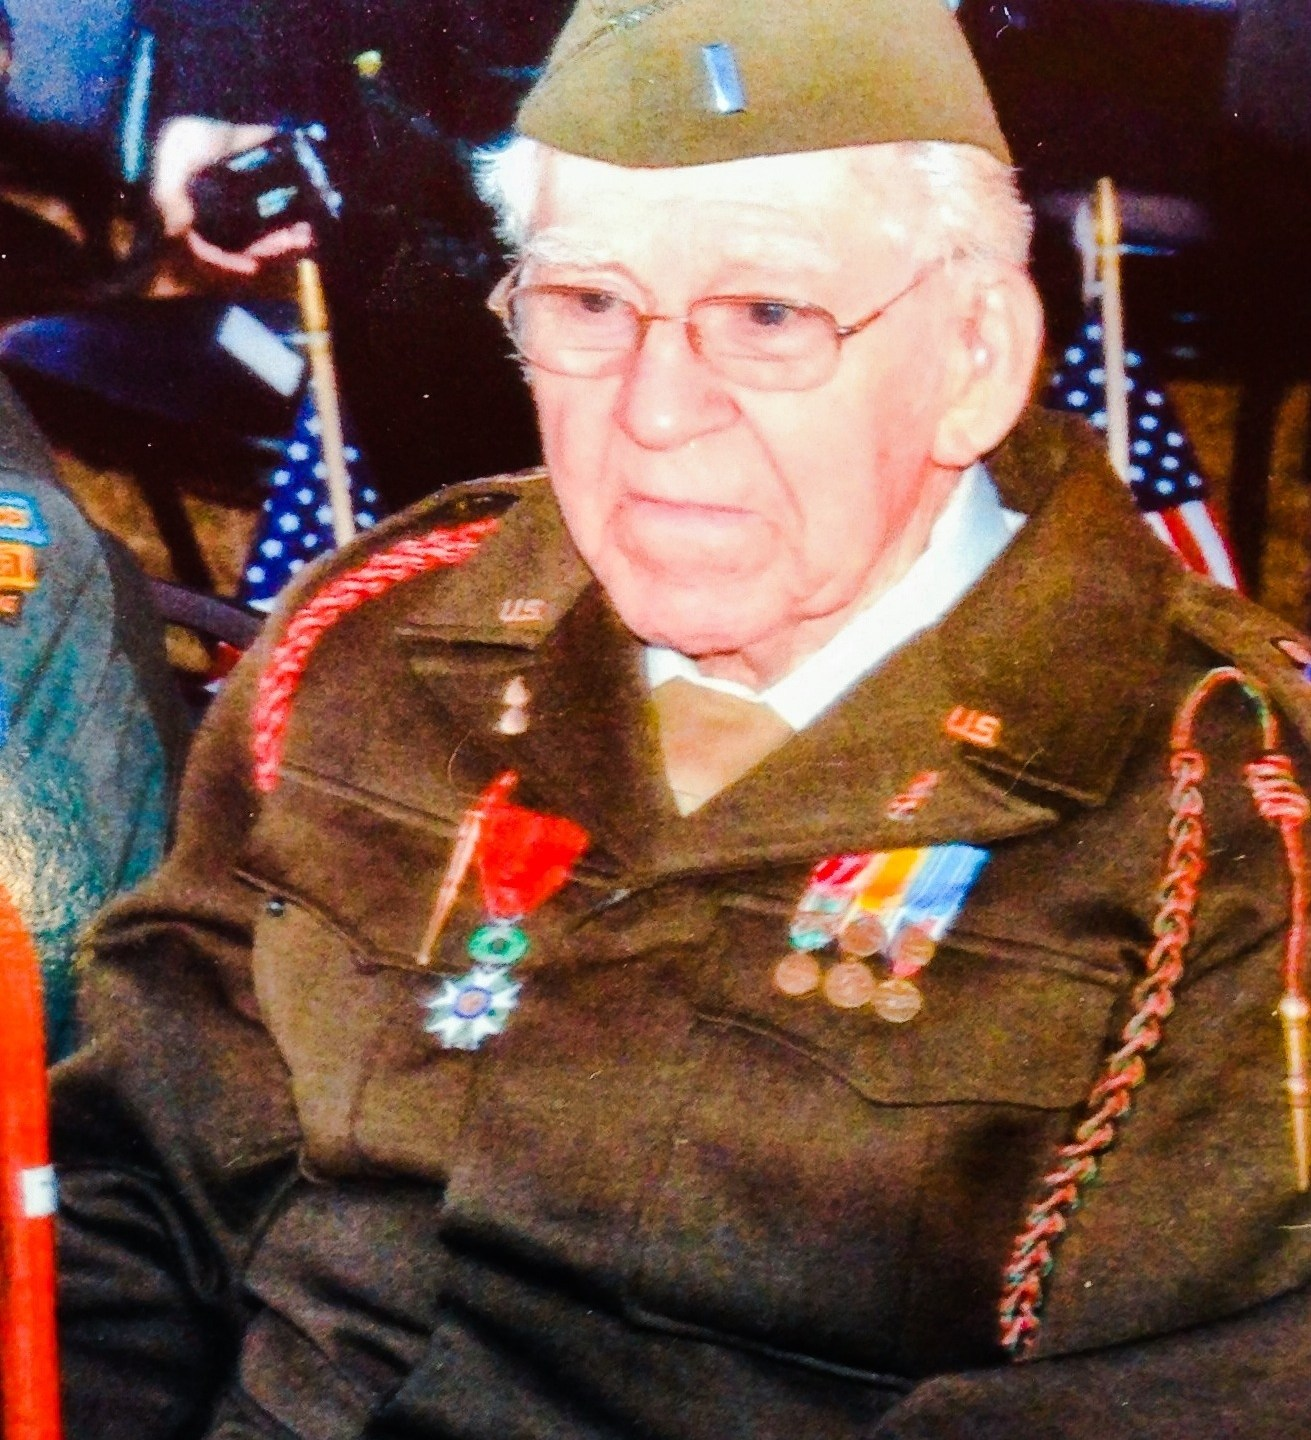 Edward Middleton A True Member of The Greatest Generation